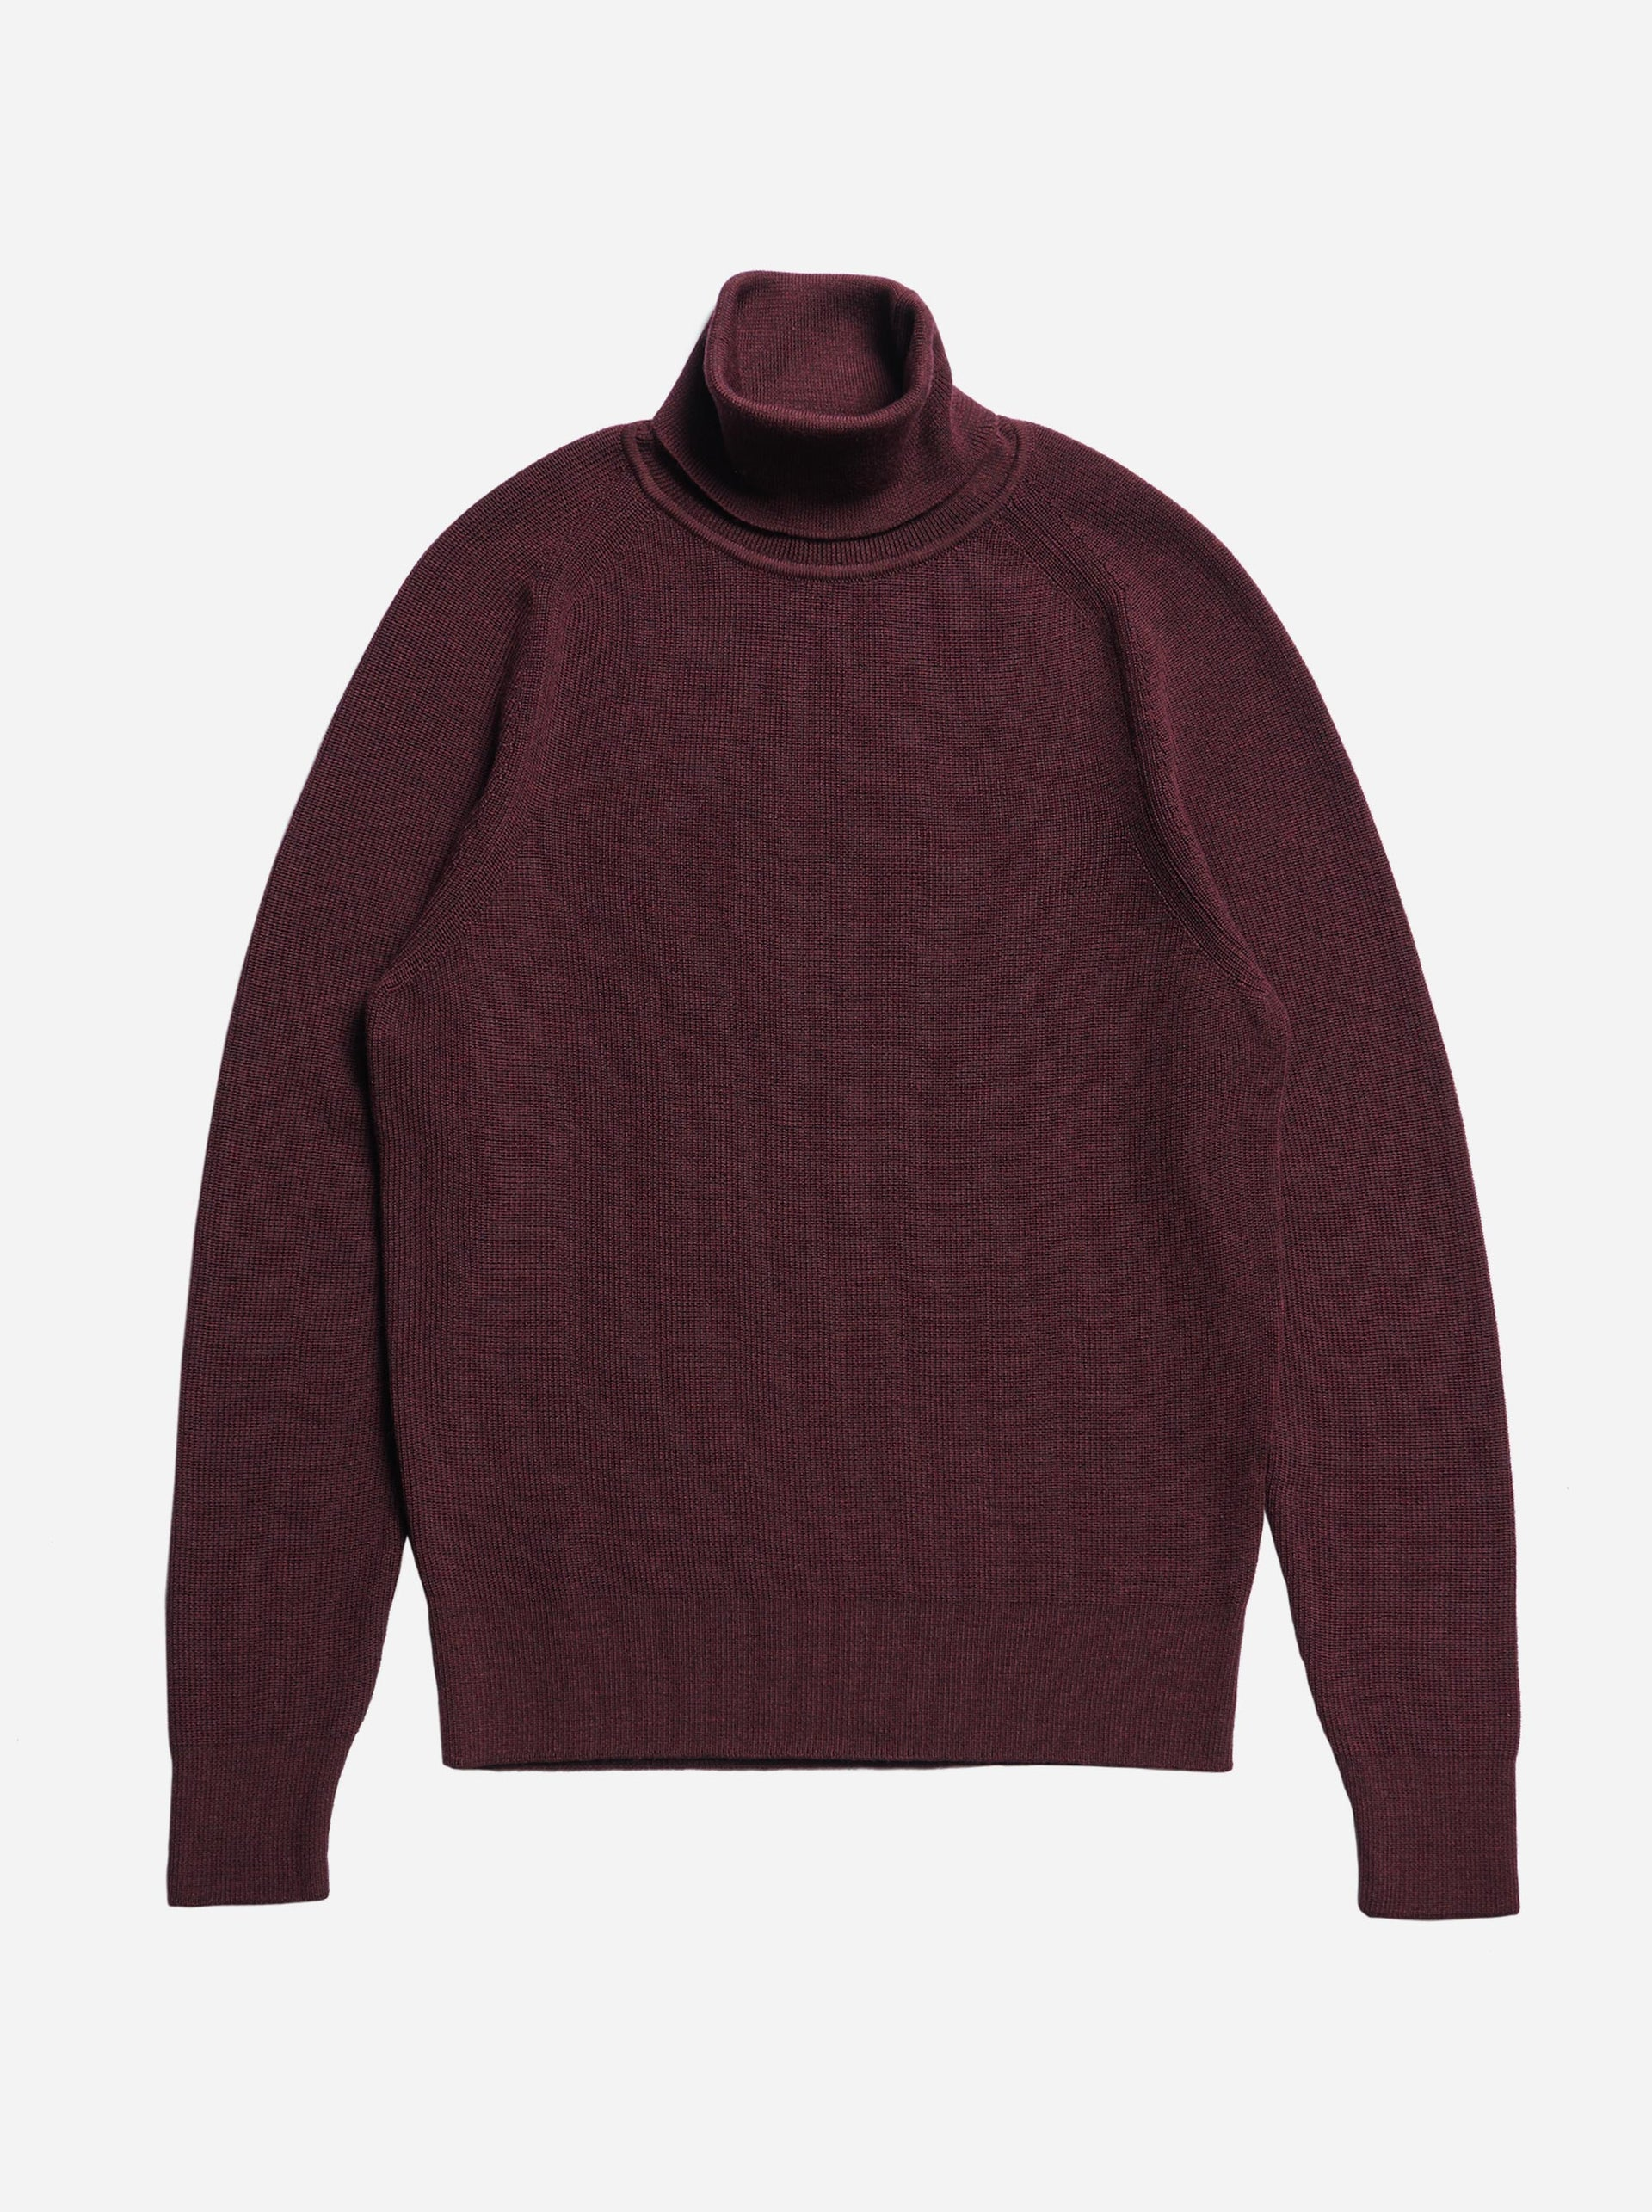 The Turtleneck Sweater - Burgundy